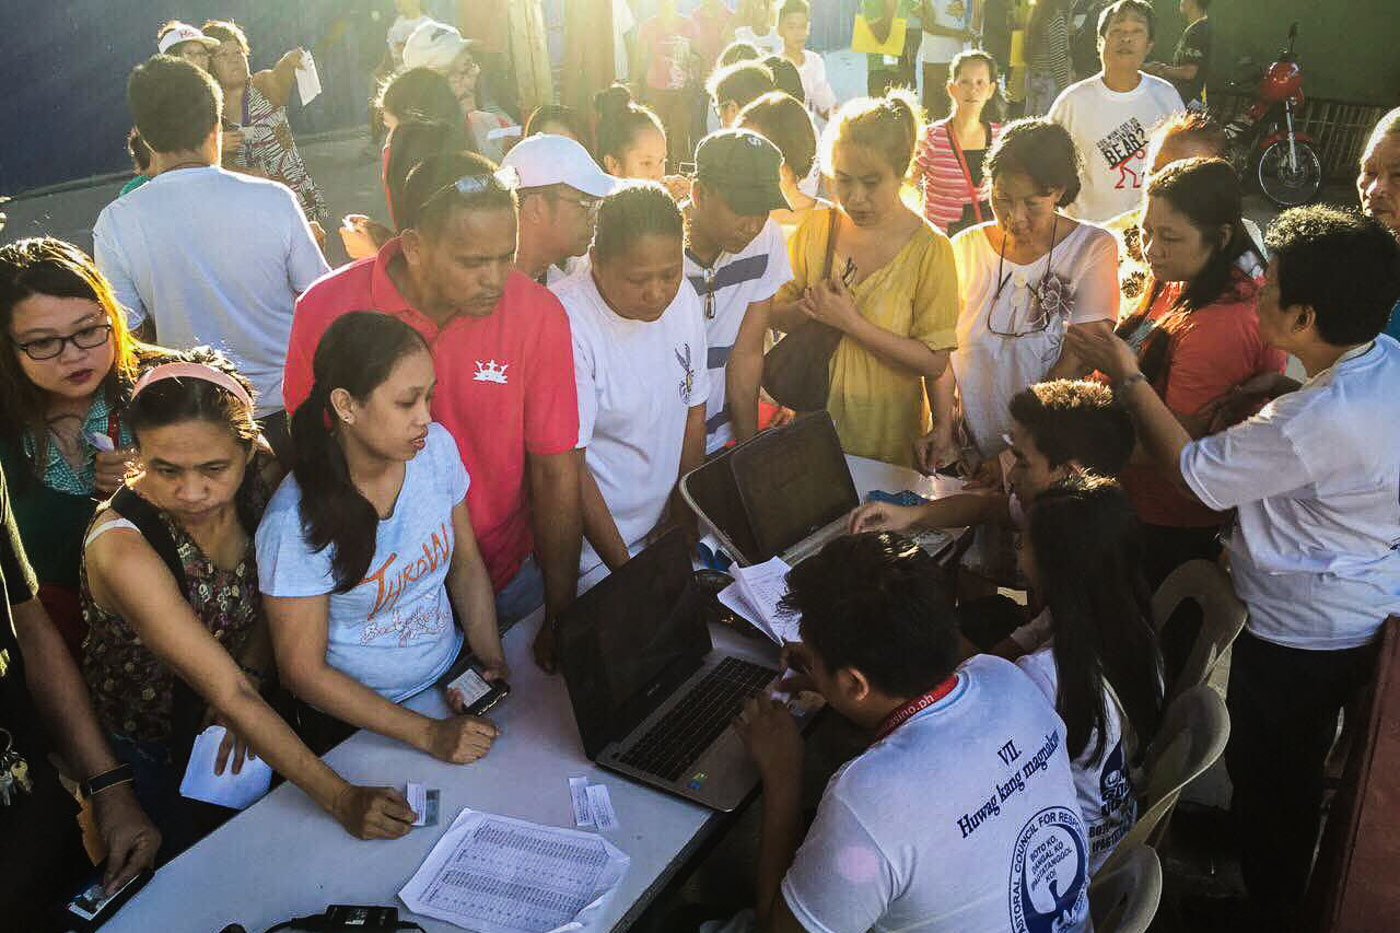 VOTERS. Early morning voters line up at the Bagumbayan Elementary School during the 2016 elections. Photo by Pat Nabong/Rappler